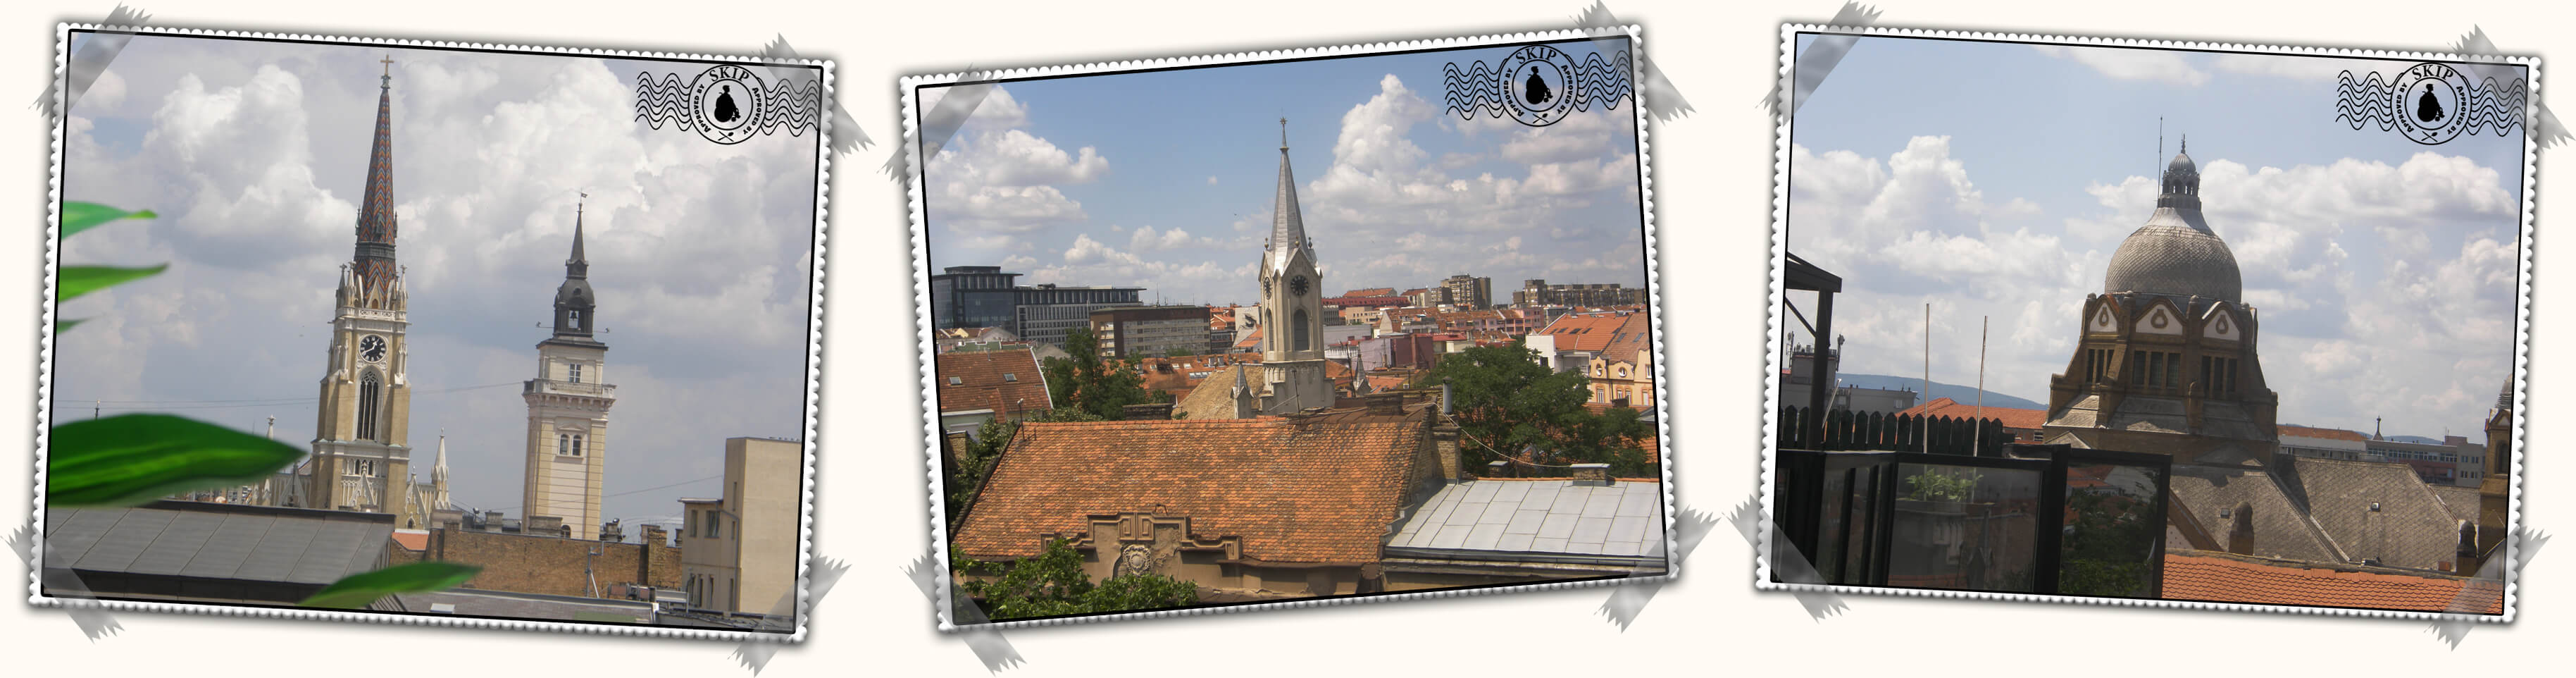 Serbia Novi Sad Travel